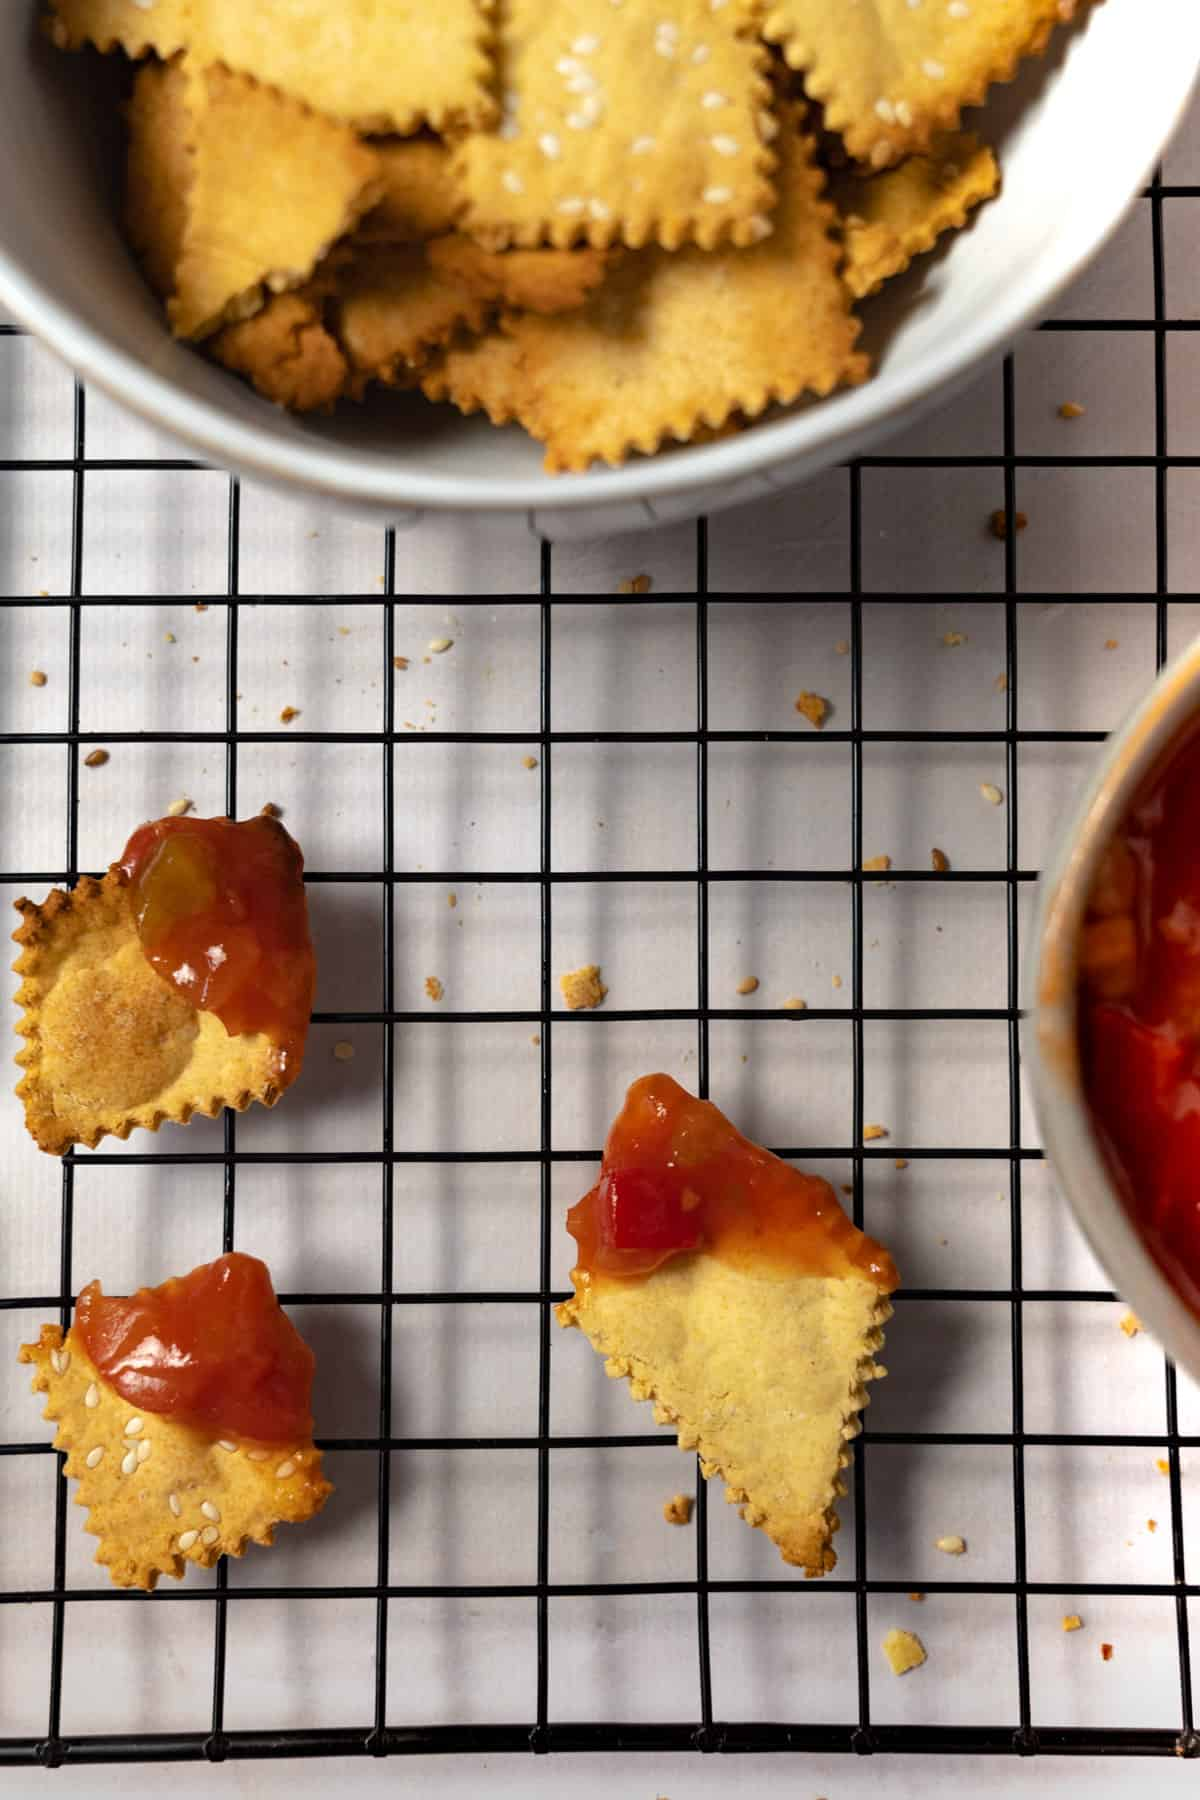 3 crackers dipped in salsa on a cooling rack